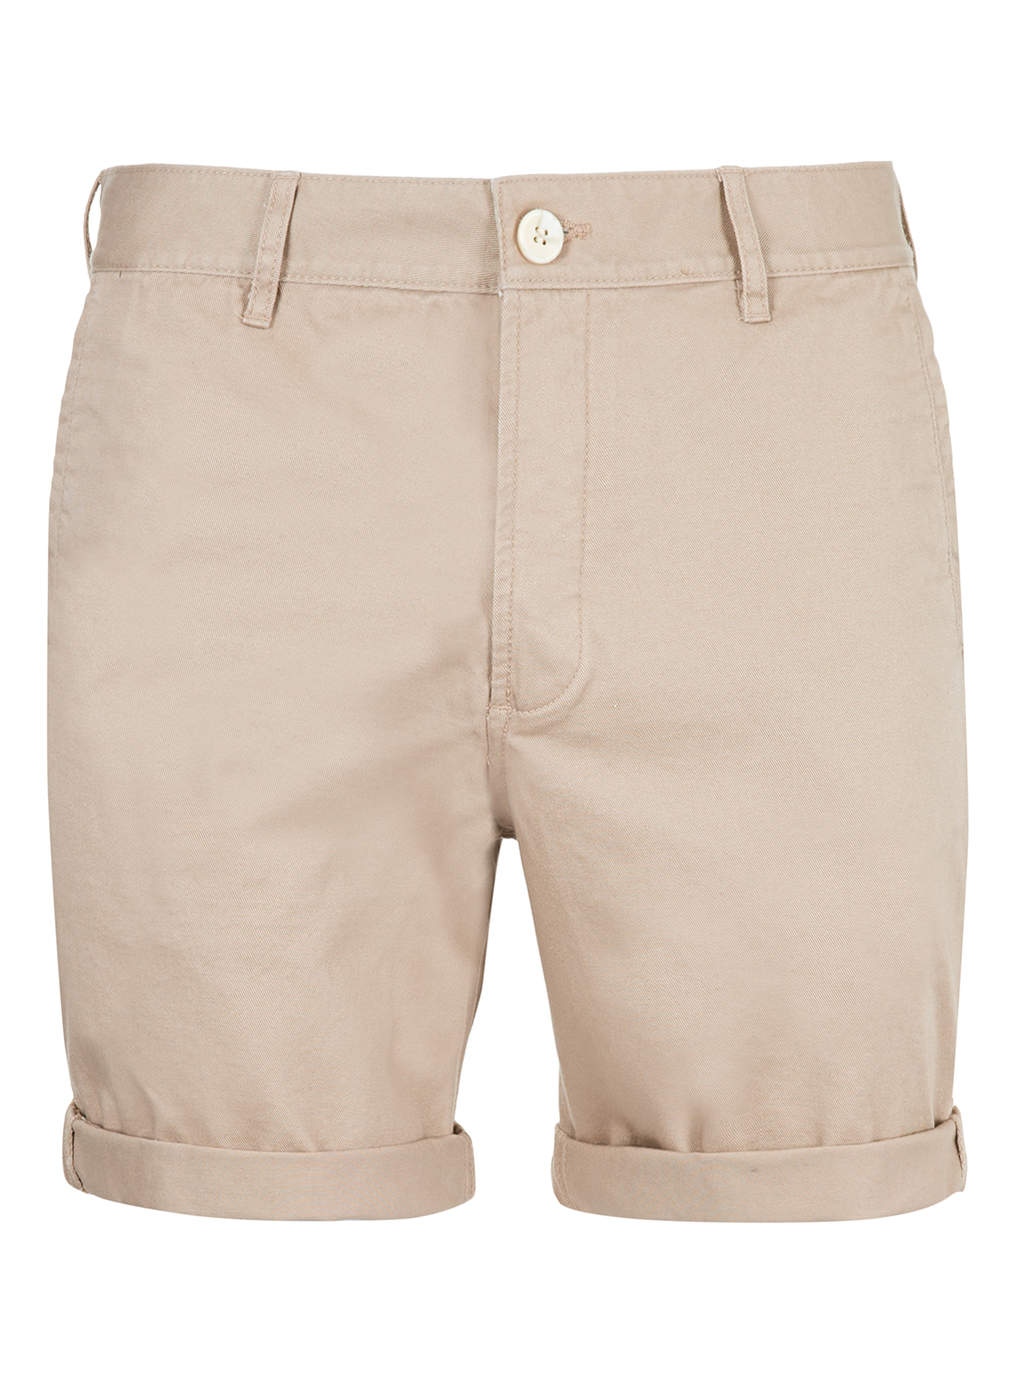 Stone Chino Shorts, $45 ... it's the shorts version of my pants!